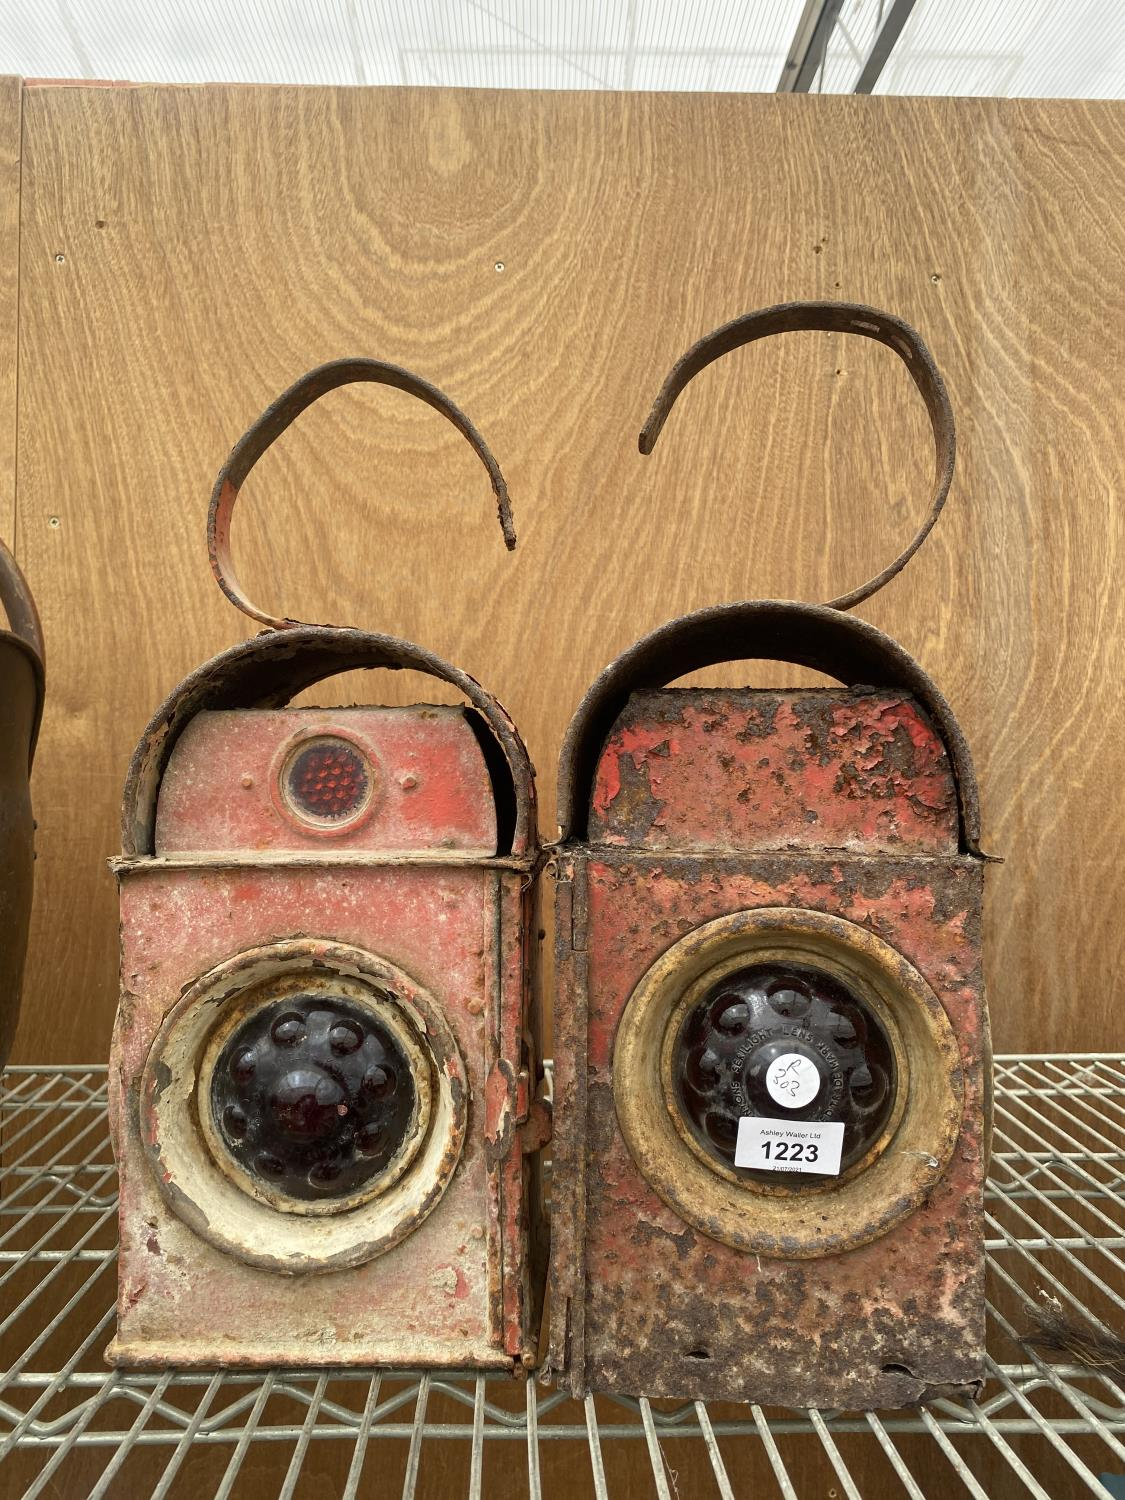 A PAIR OF VINTAGE ROAD LAMPS